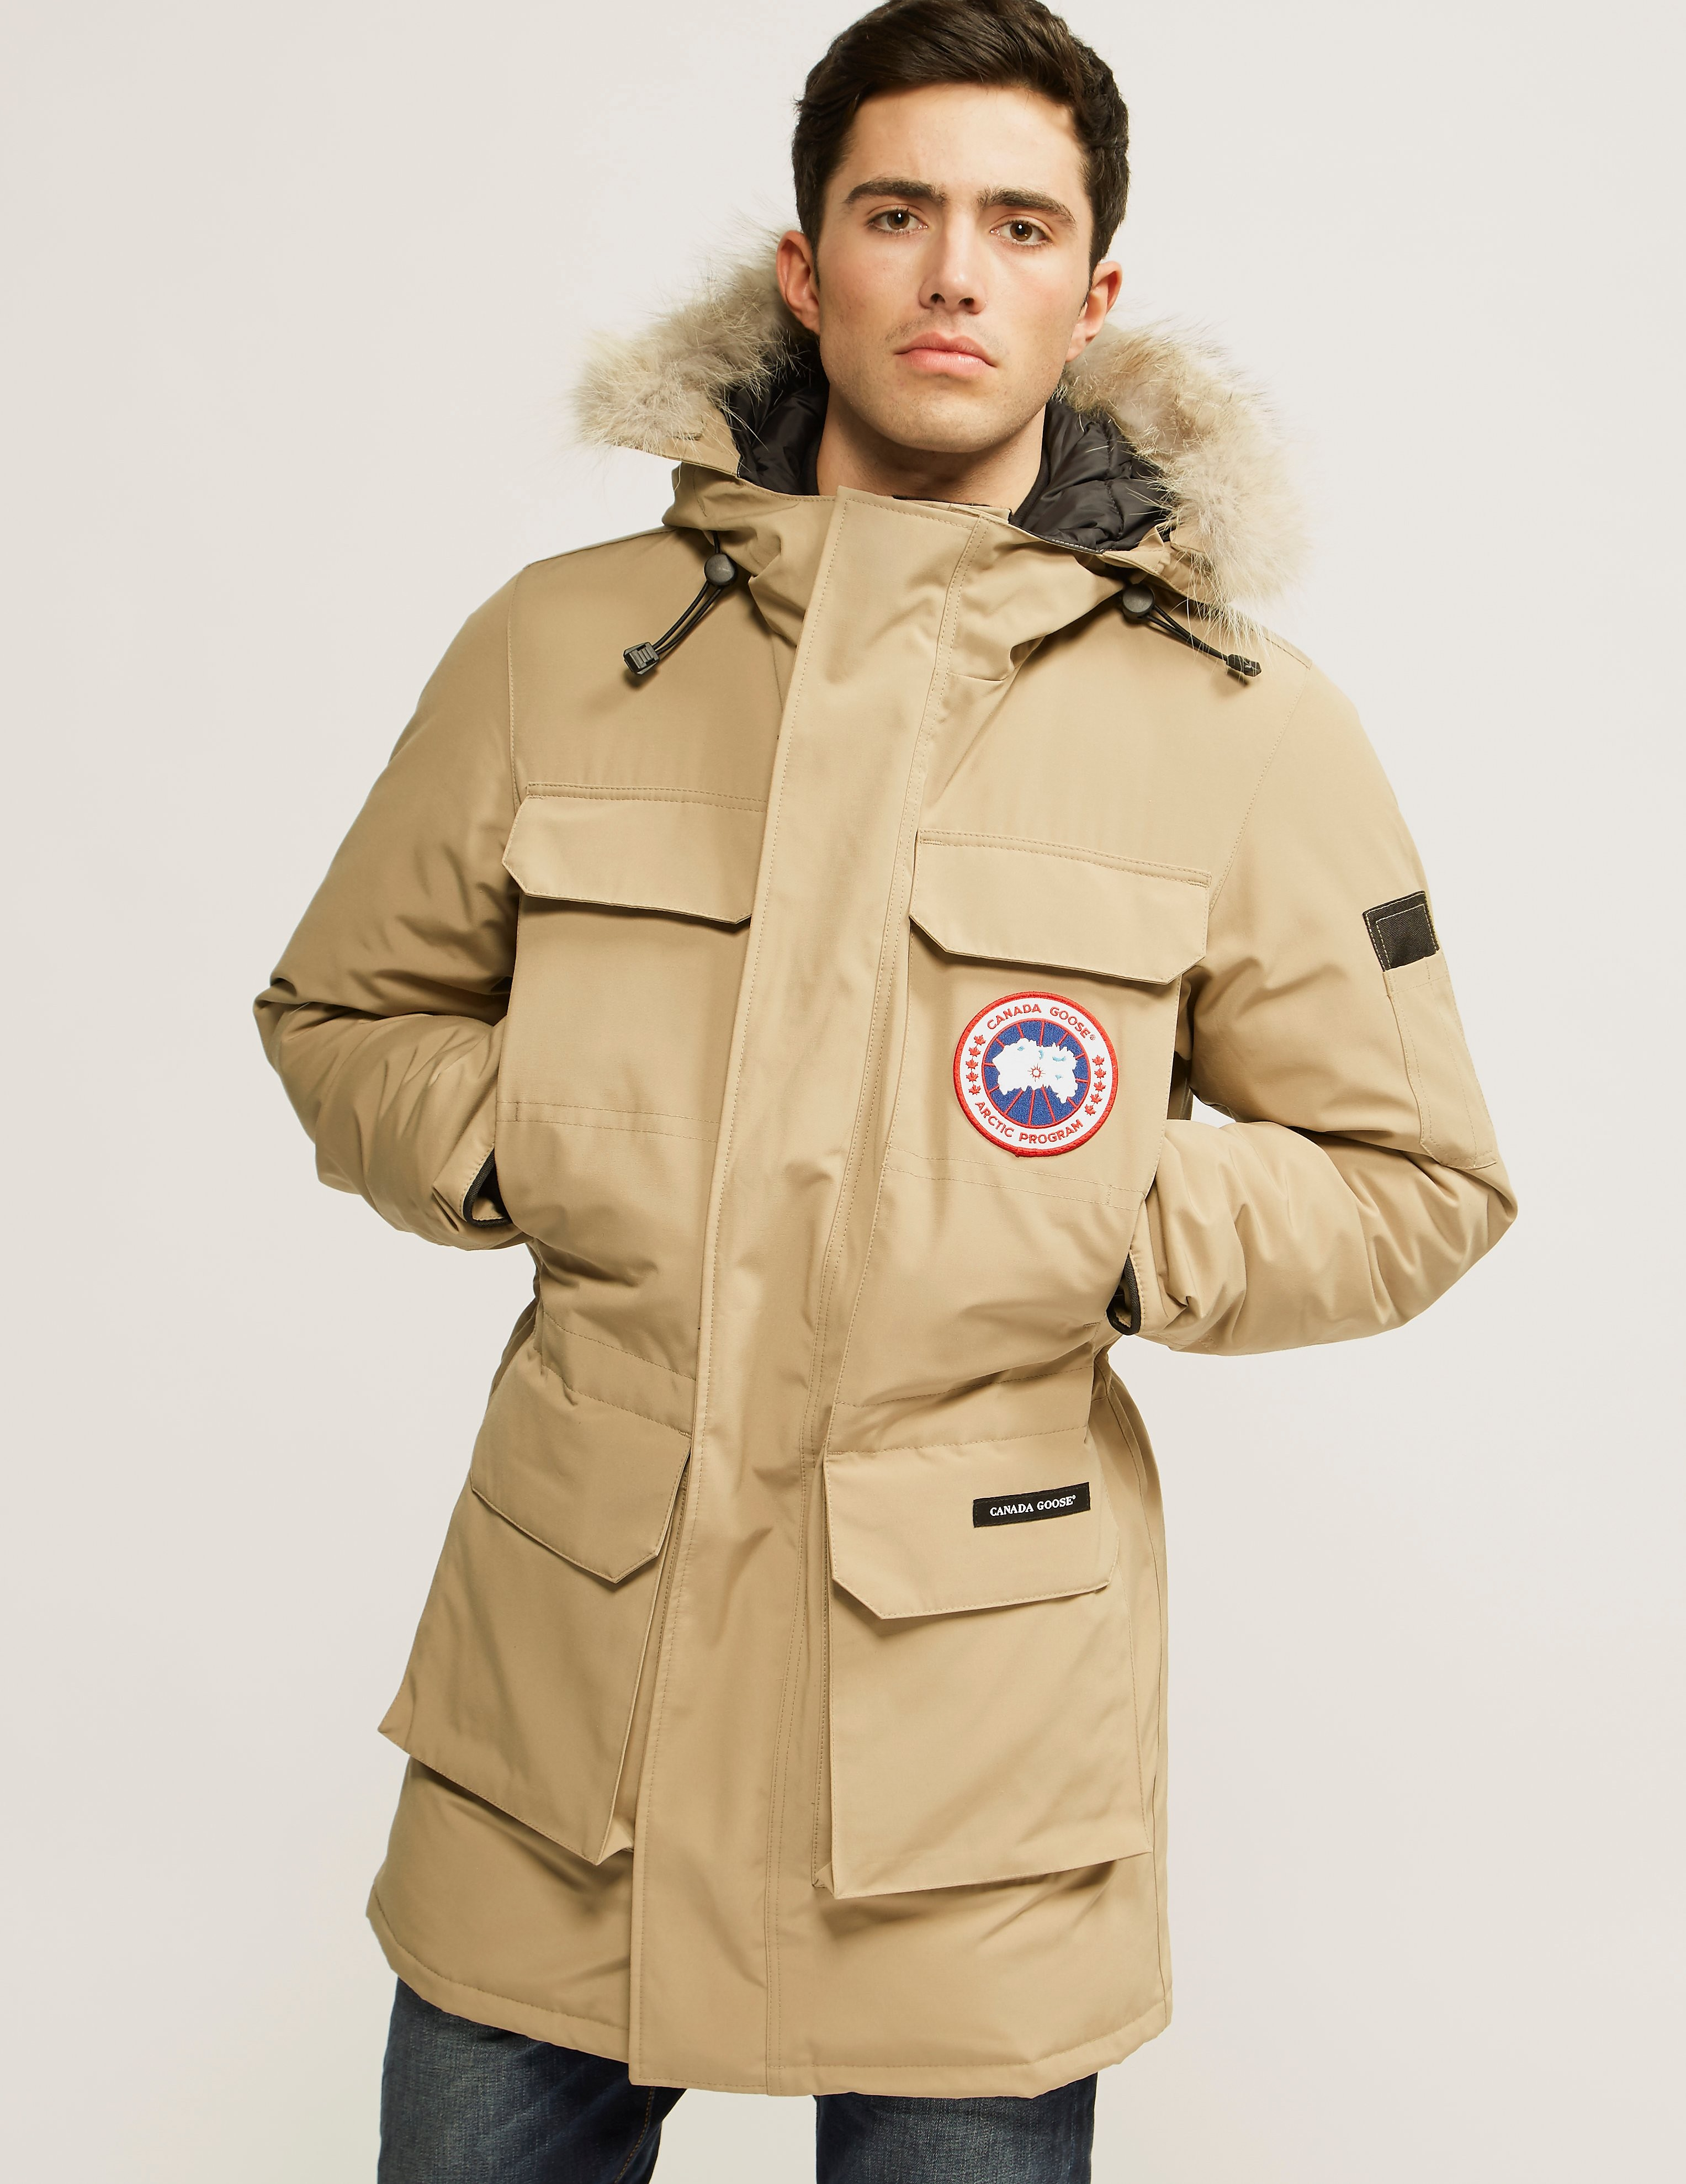 Best place to buy canada goose jacket